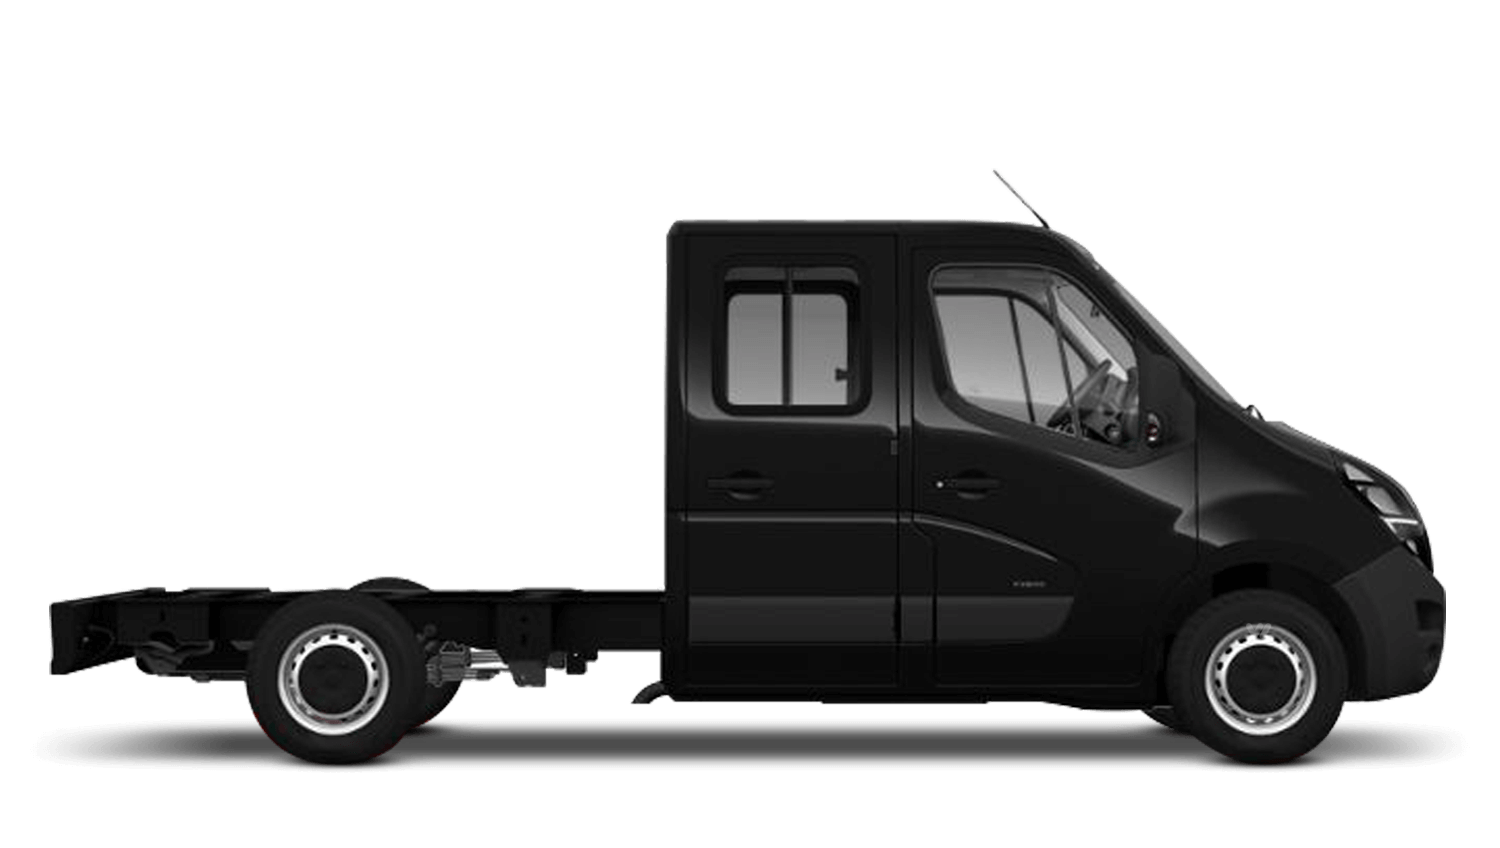 Pearl Black (Metallic) New Vauxhall Movano Conversions